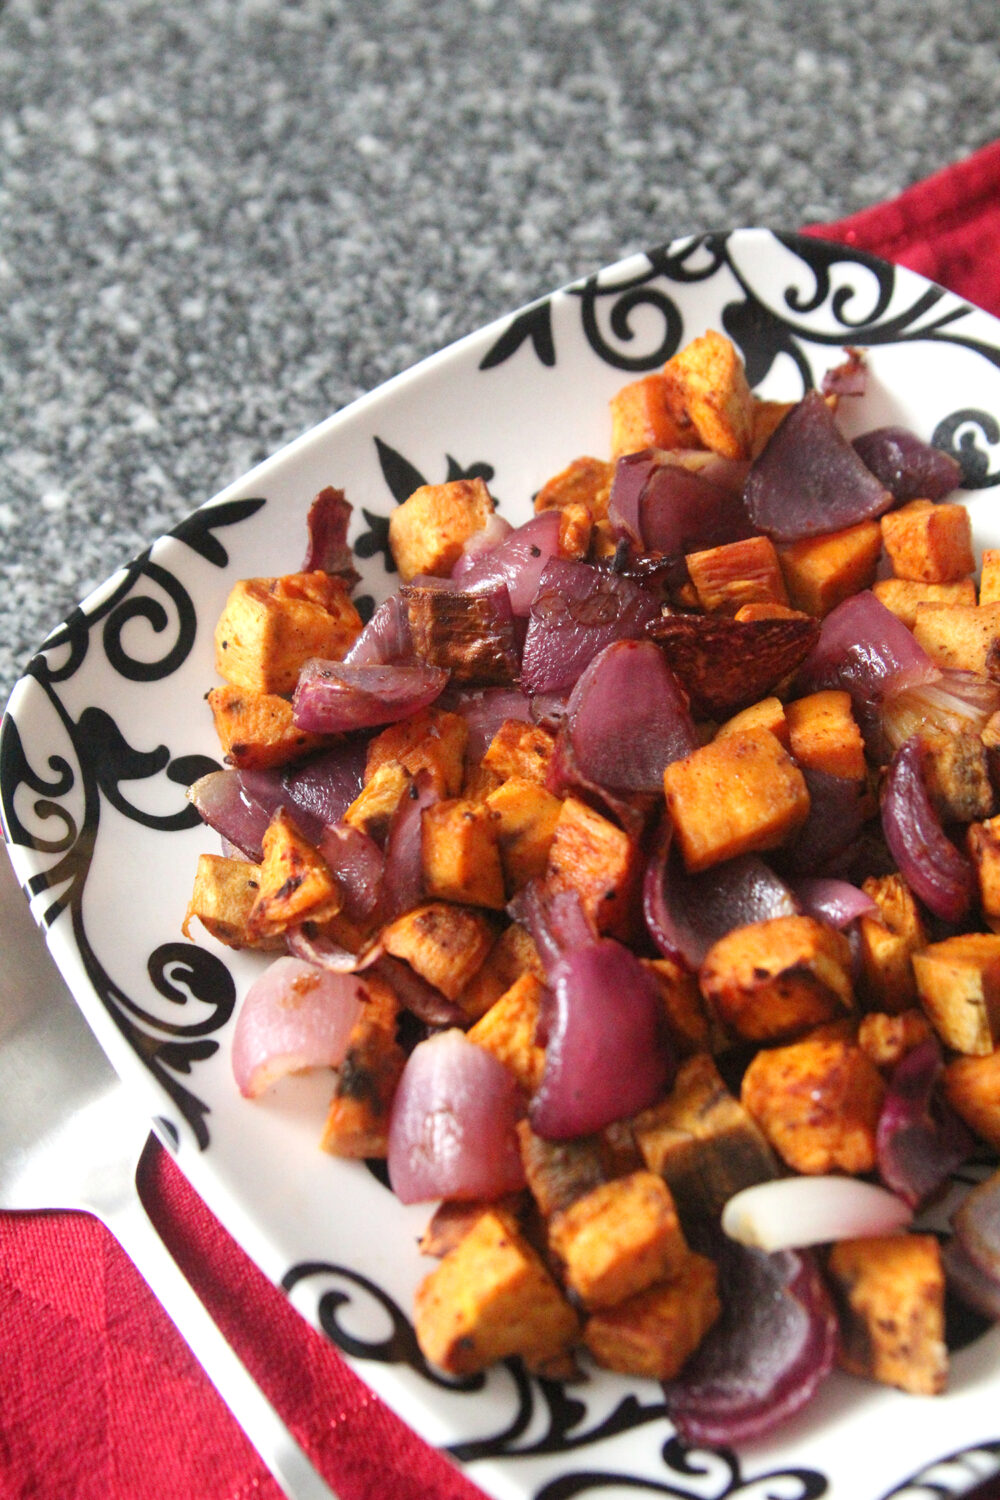 A plate of Roasted Sweet Potatoes and Red Onions with Gochujang Seasoning.